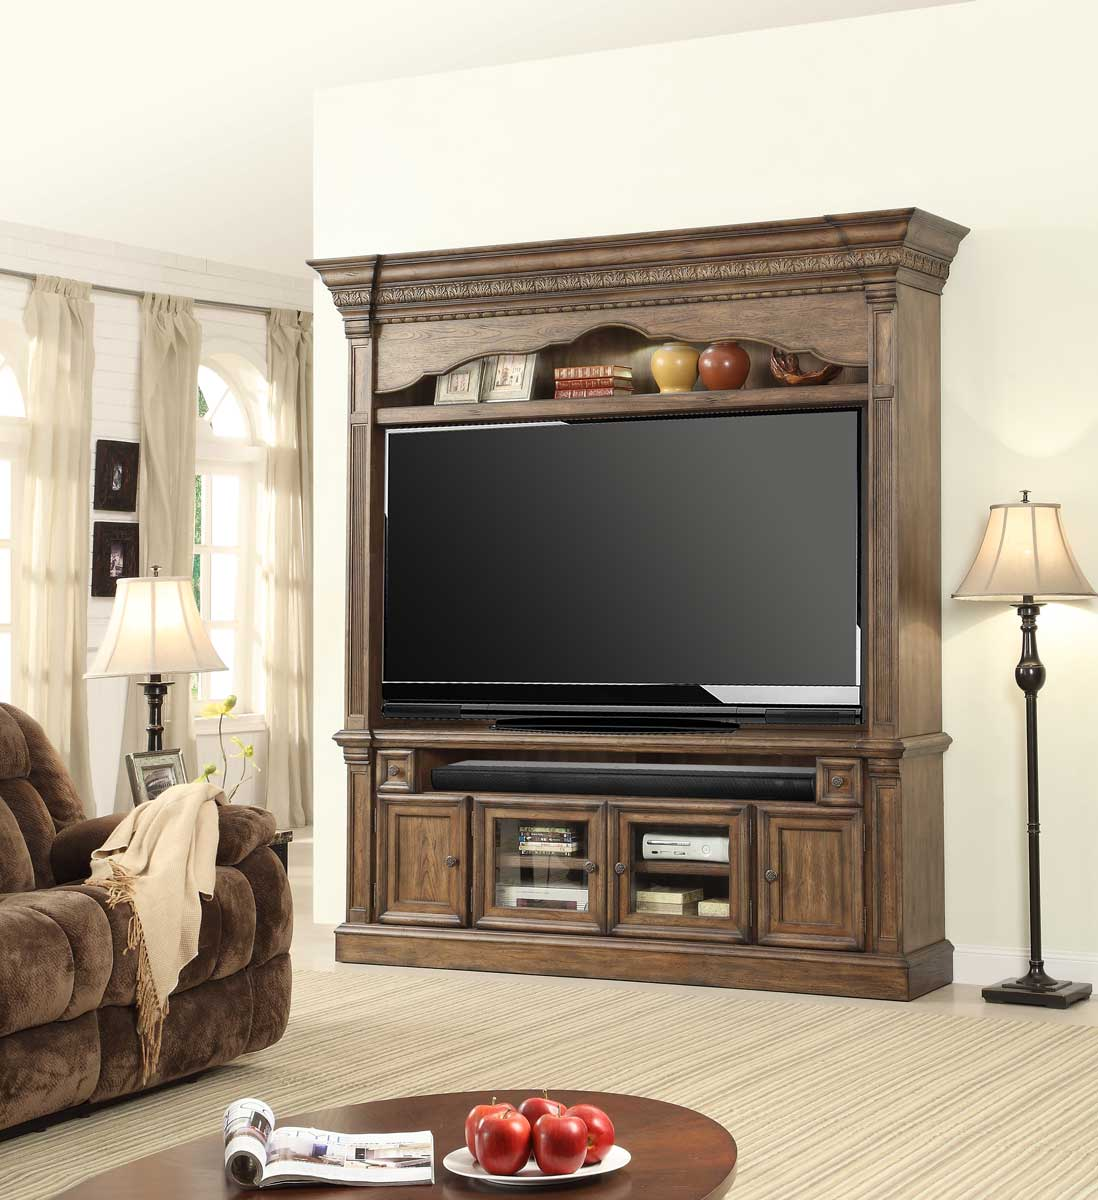 Parker House Furniture Aria Collection: Consoles, Armories, and Entertainment Centers